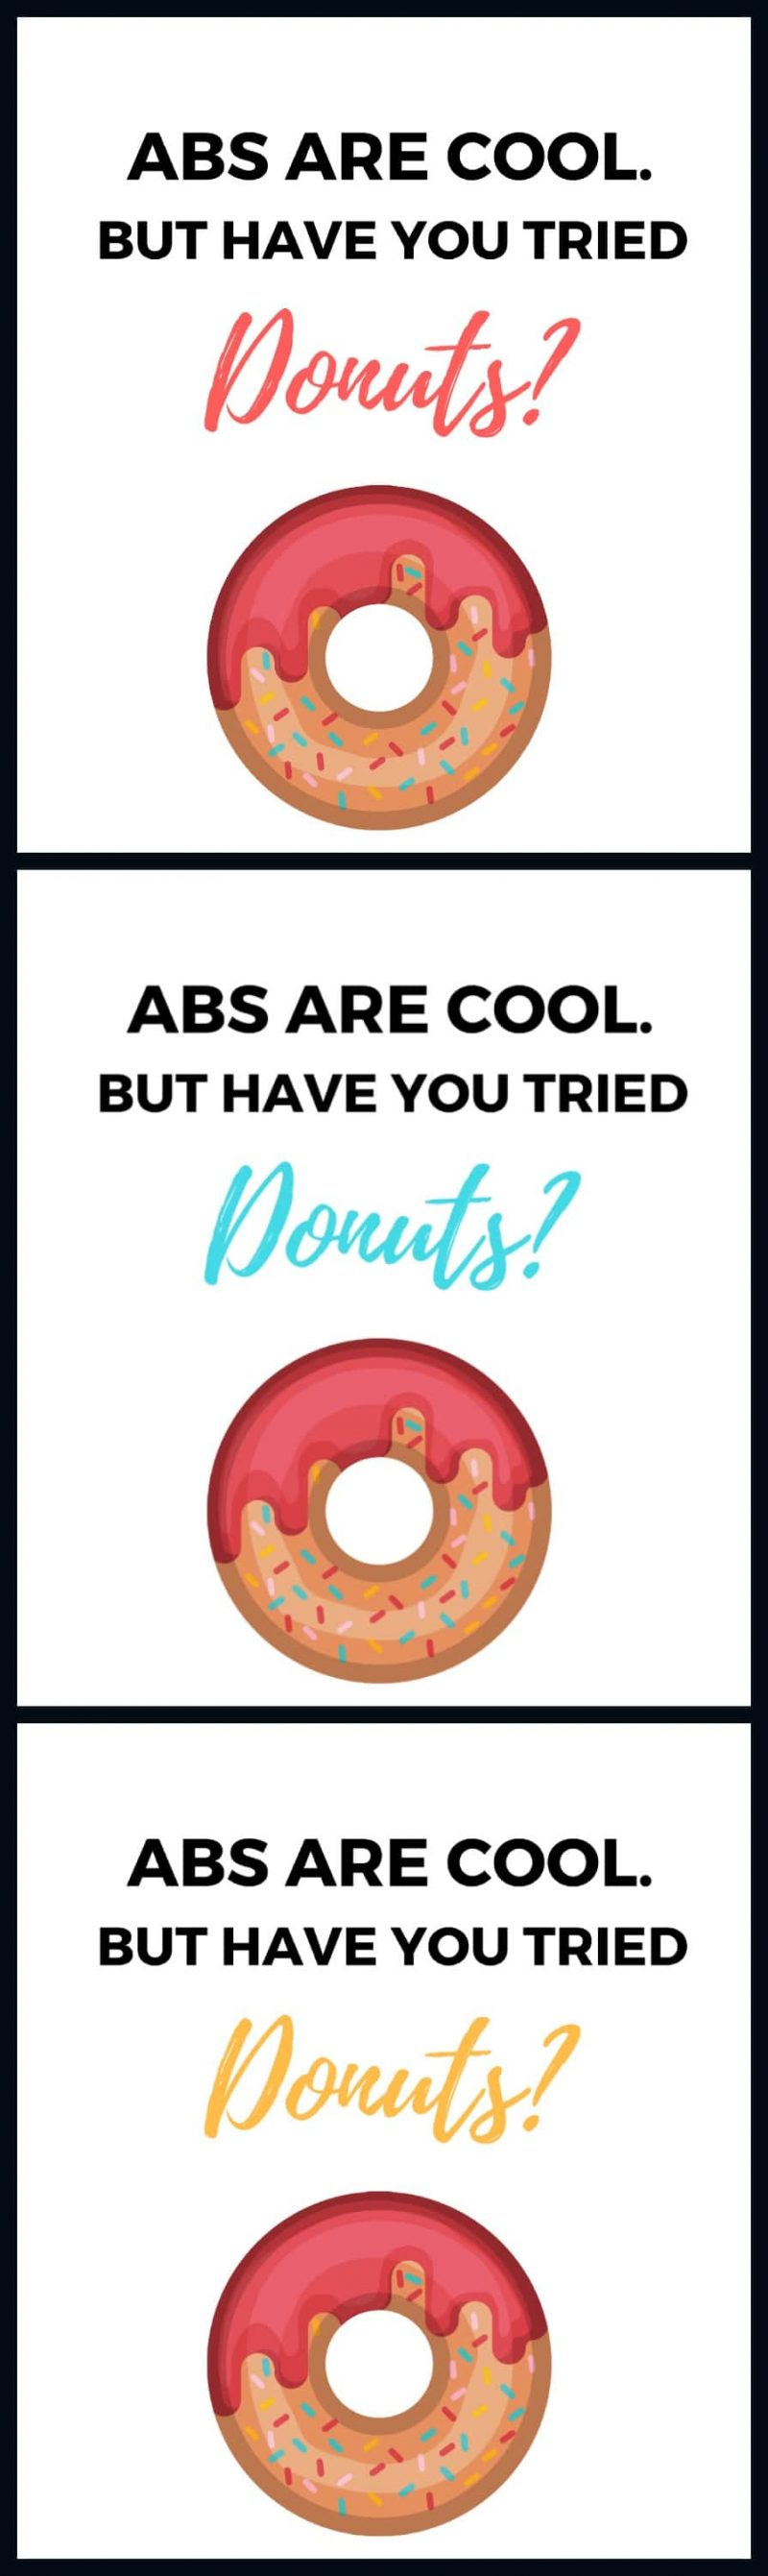 Free Printable: Abs are Cool But Have you Tried Donuts? Super fun printable to stick in your gym or home office